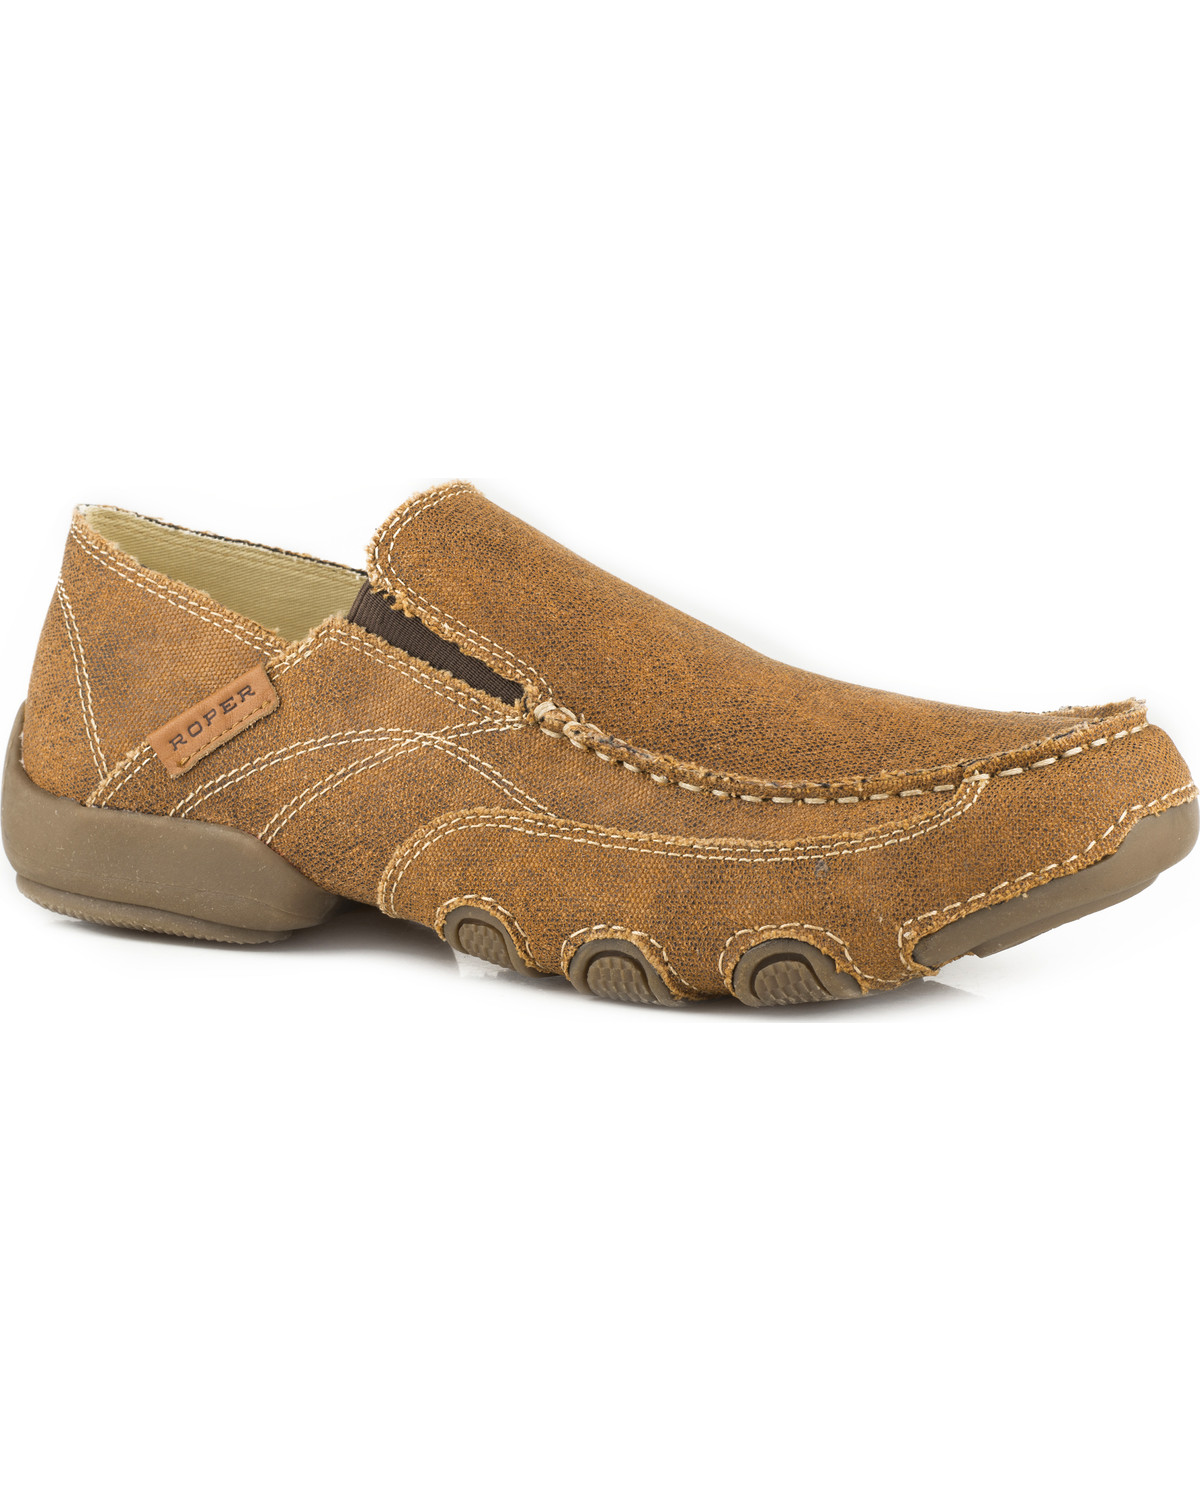 Over Vintage Driving Moc Shoes | Boot Barn